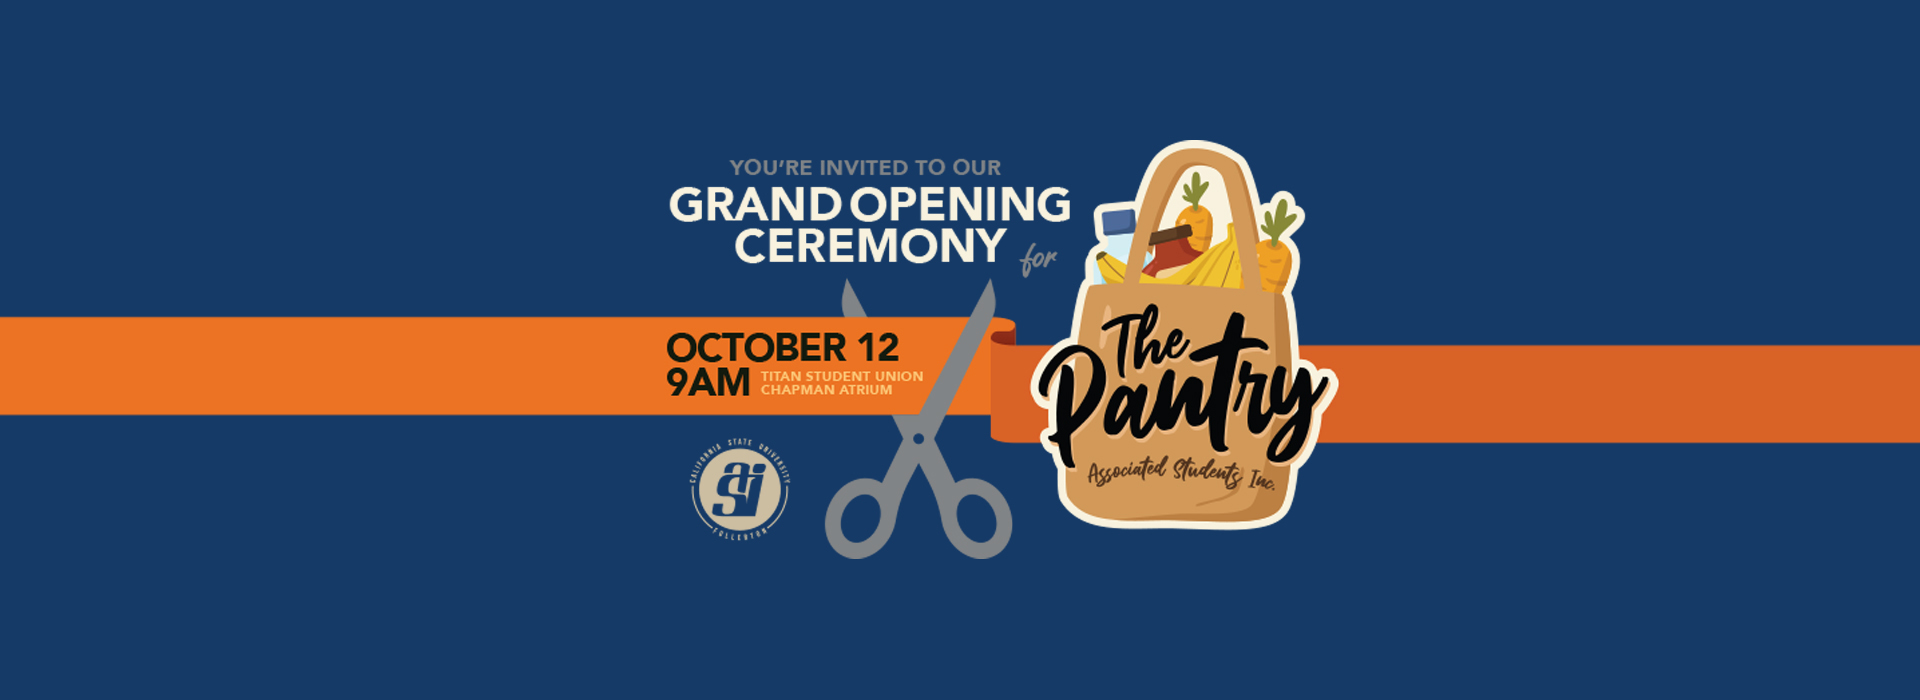 The Pantry Grand Opening